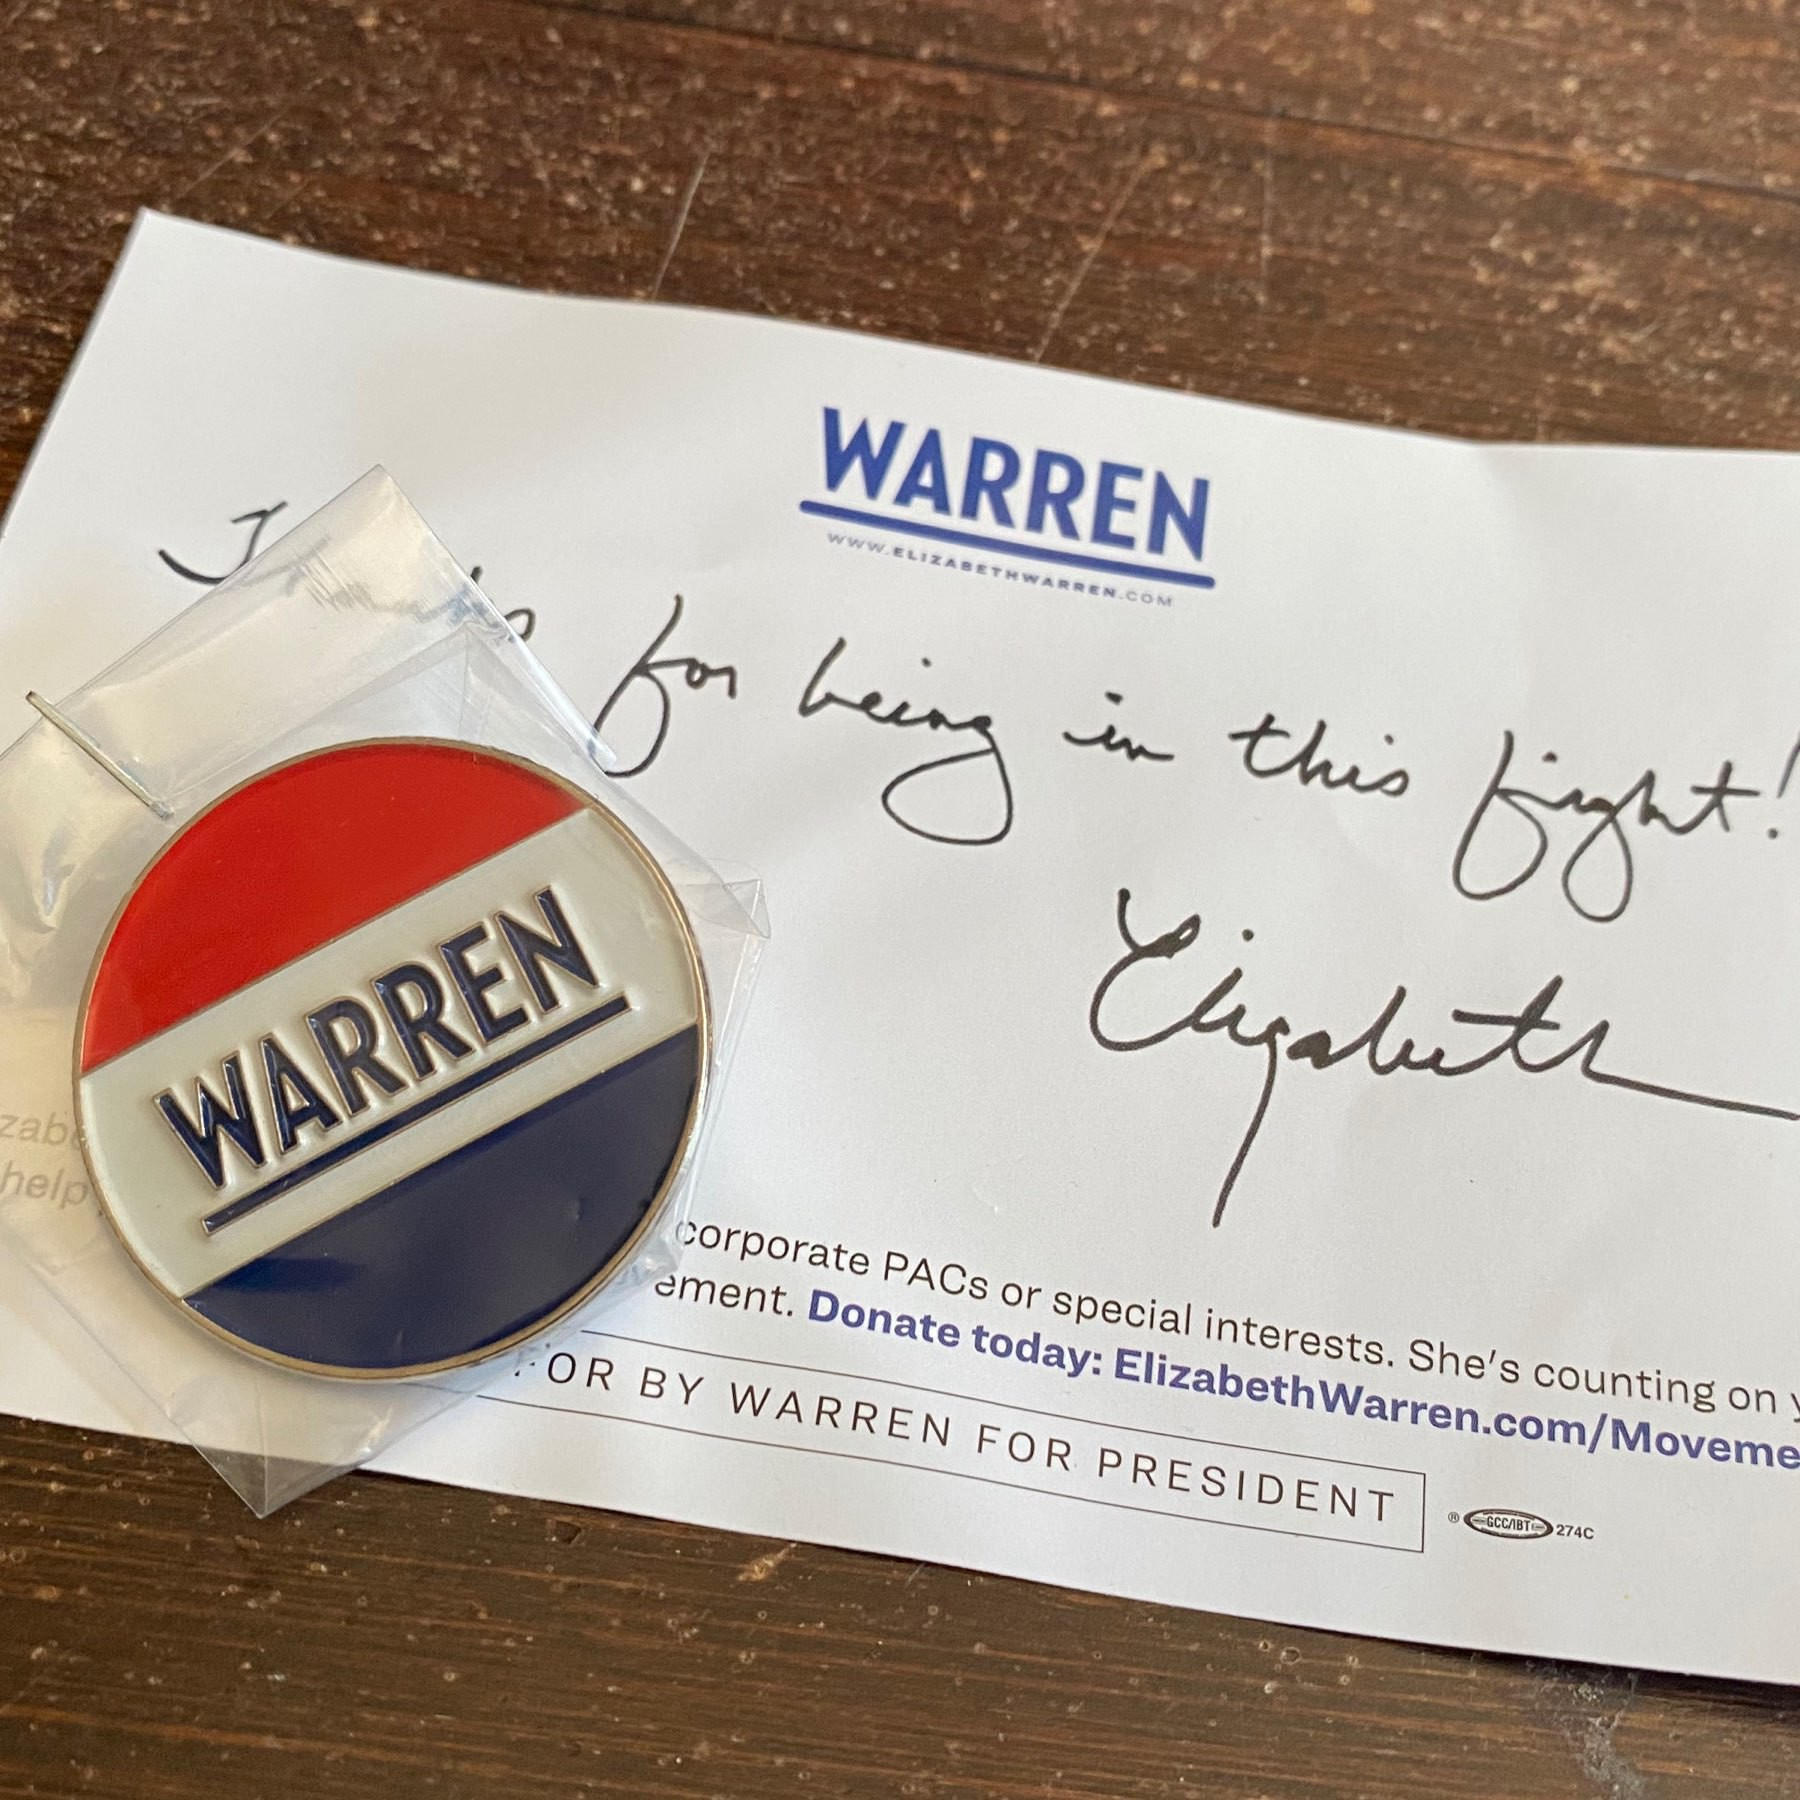 thank you note and enameled pin from Warren for president